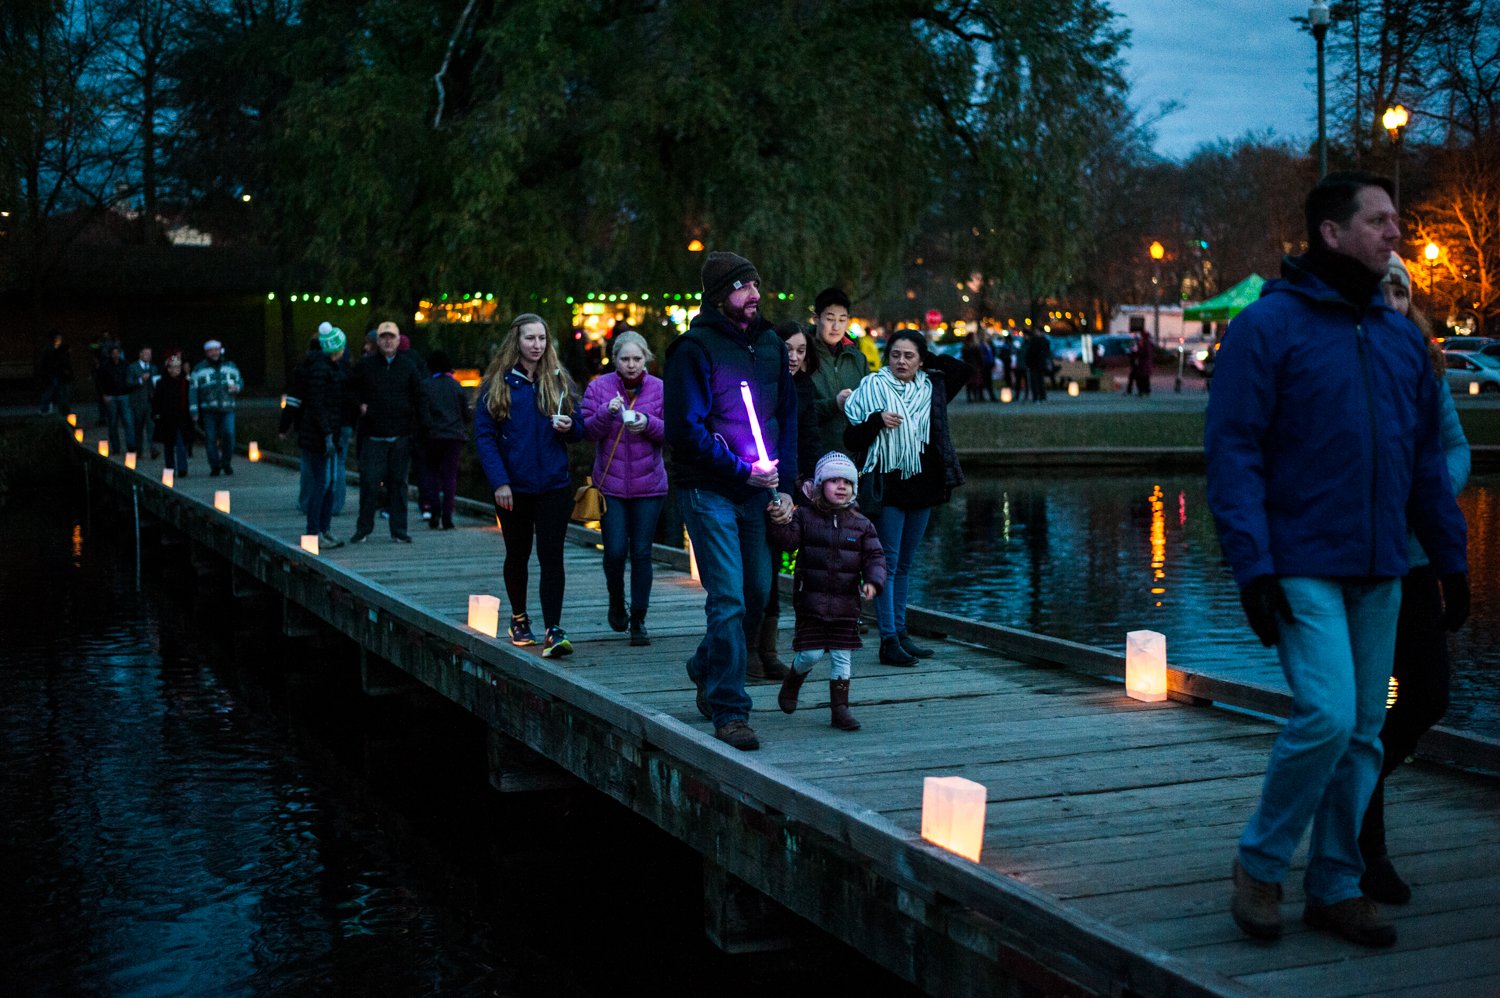 Pathway of Lights is an annual community event that got everyone in the spirit Saturday, Dec. 8 at Green Lake with thousands of twinkling candles, complimentary refreshments, live holiday music and hot air balloons (for the second year in a row)! Attendees were encouraged to bring non-perishable food items to benefit FamilyWorks, adding charitable giving to the evening's atmosphere. (Image: Elizabeth Crook / Seattle Refined)